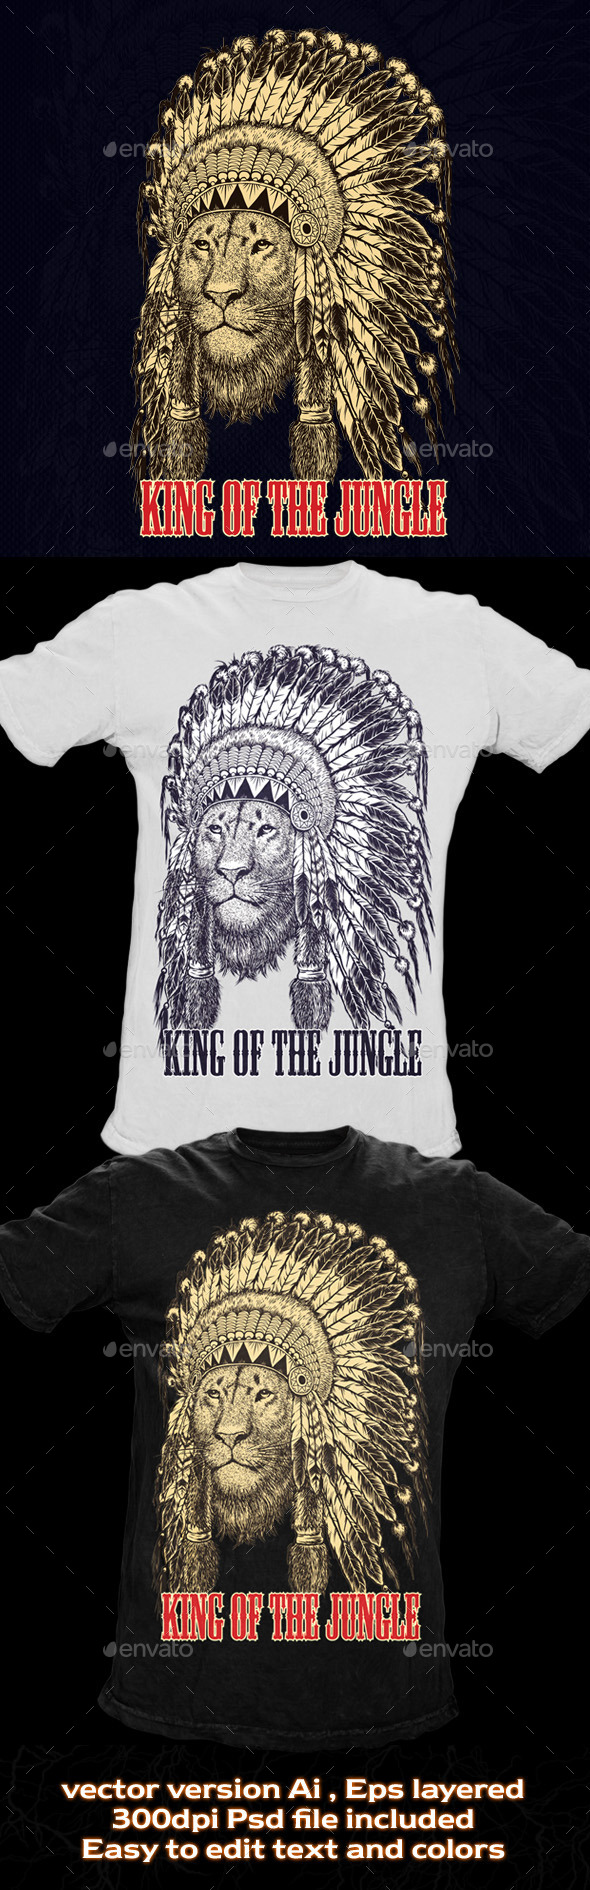 d562e657 Simple T-shirt Designs from GraphicRiver